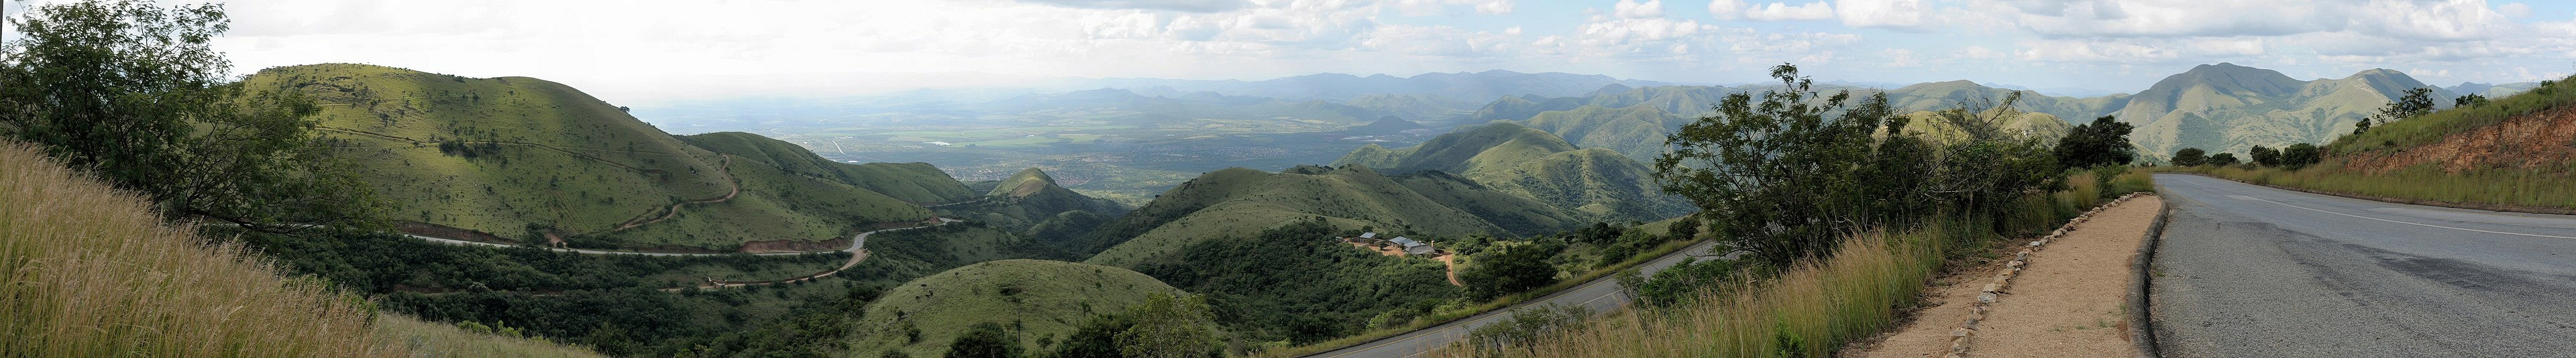 A panoramic photograph of the Makhonjwa Mountains area